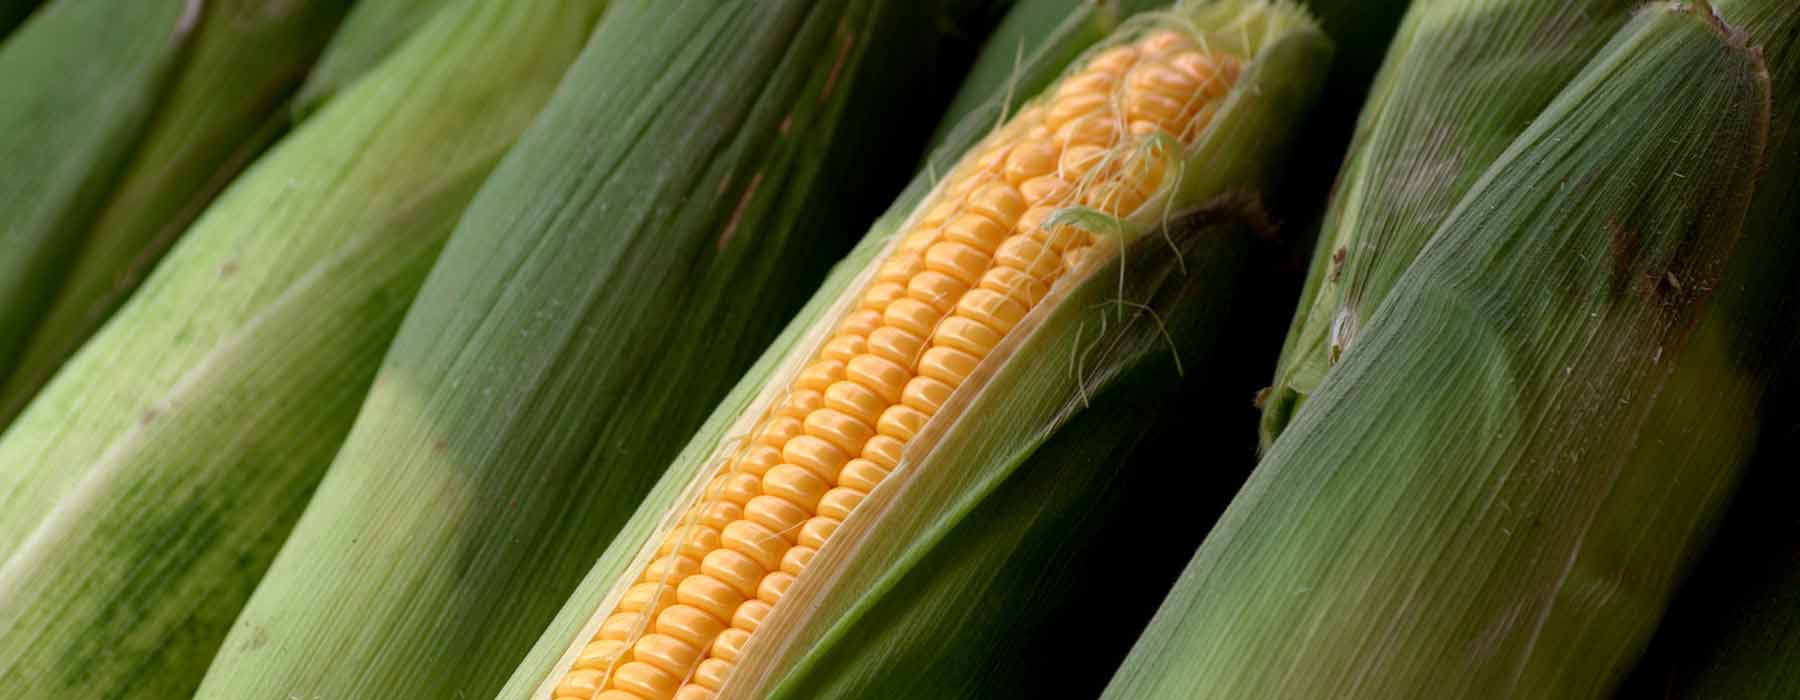 corn on the cob including the husk